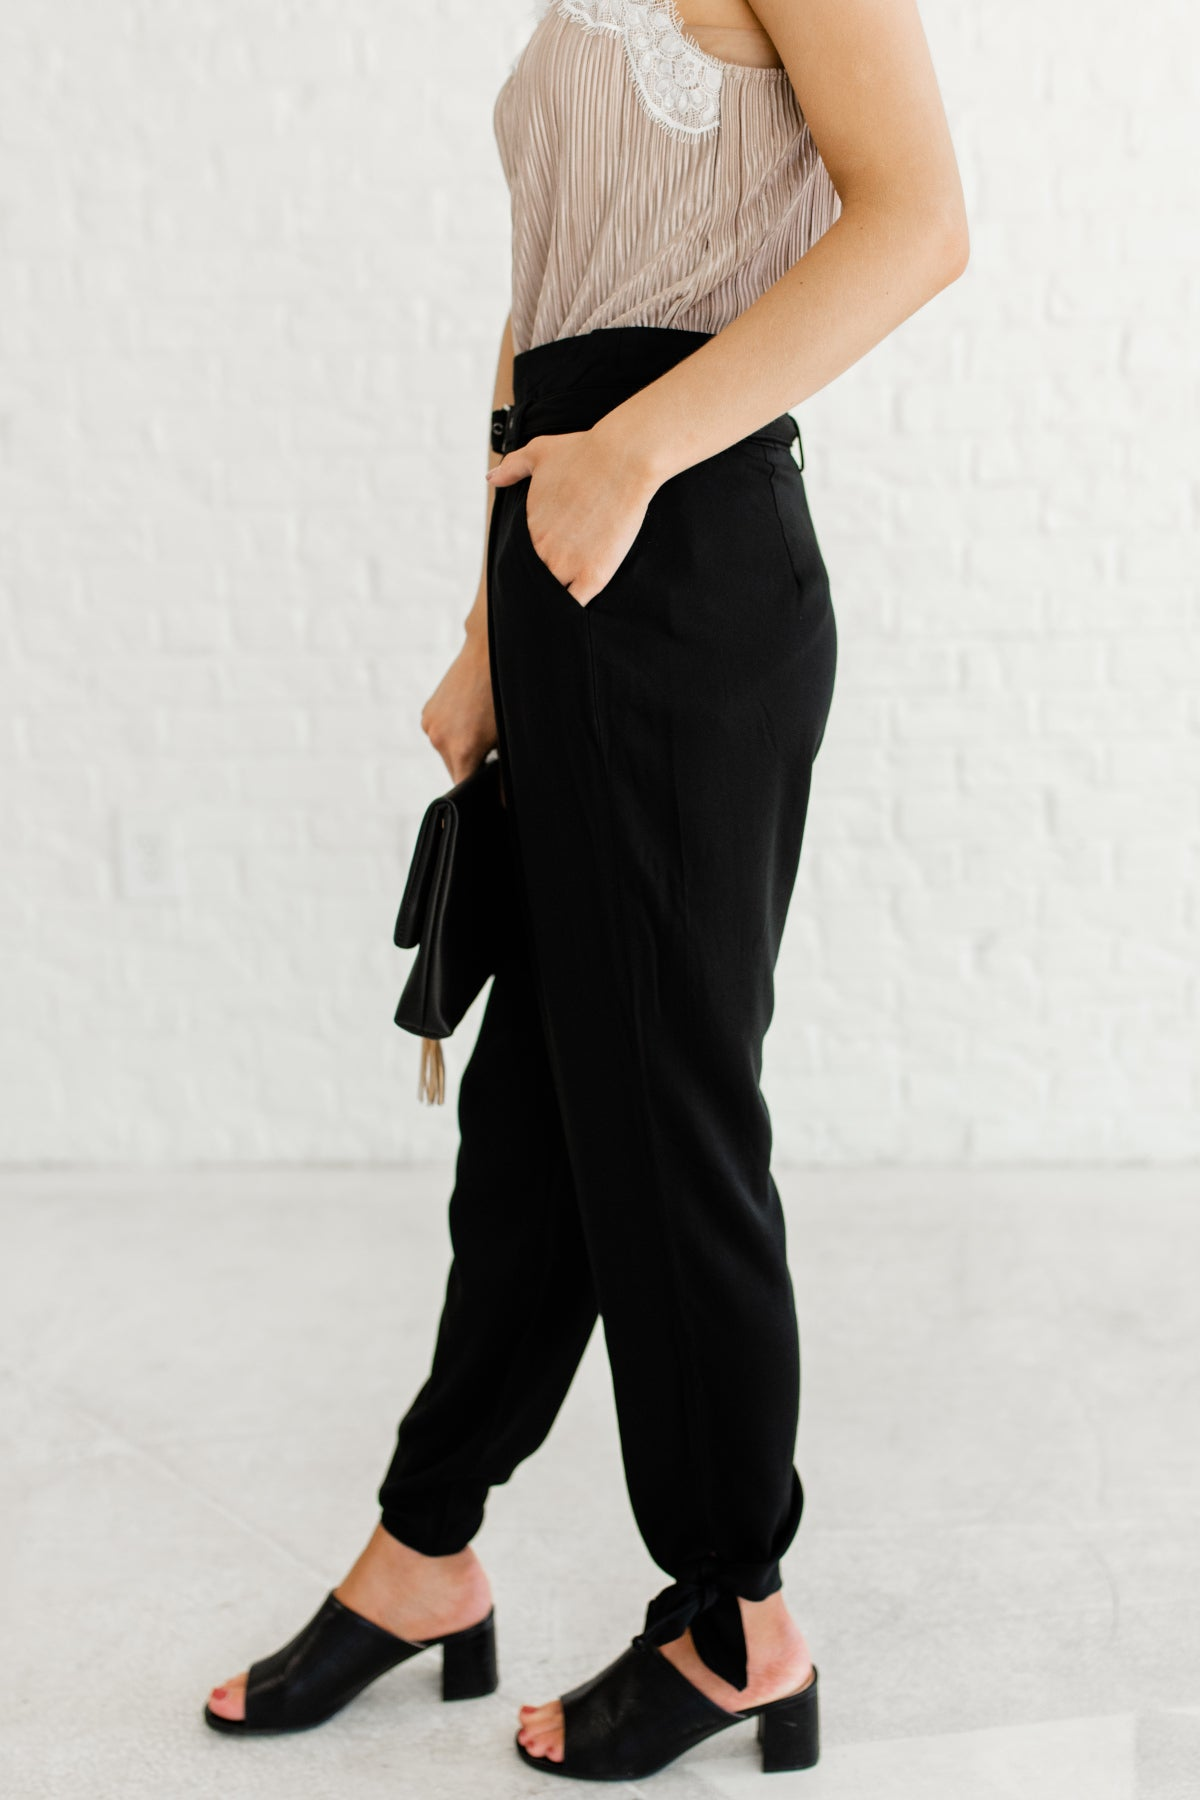 Black Boutique Slacks and Business Casual Dress Pants with Tie Accents and Removable Trendy Belt